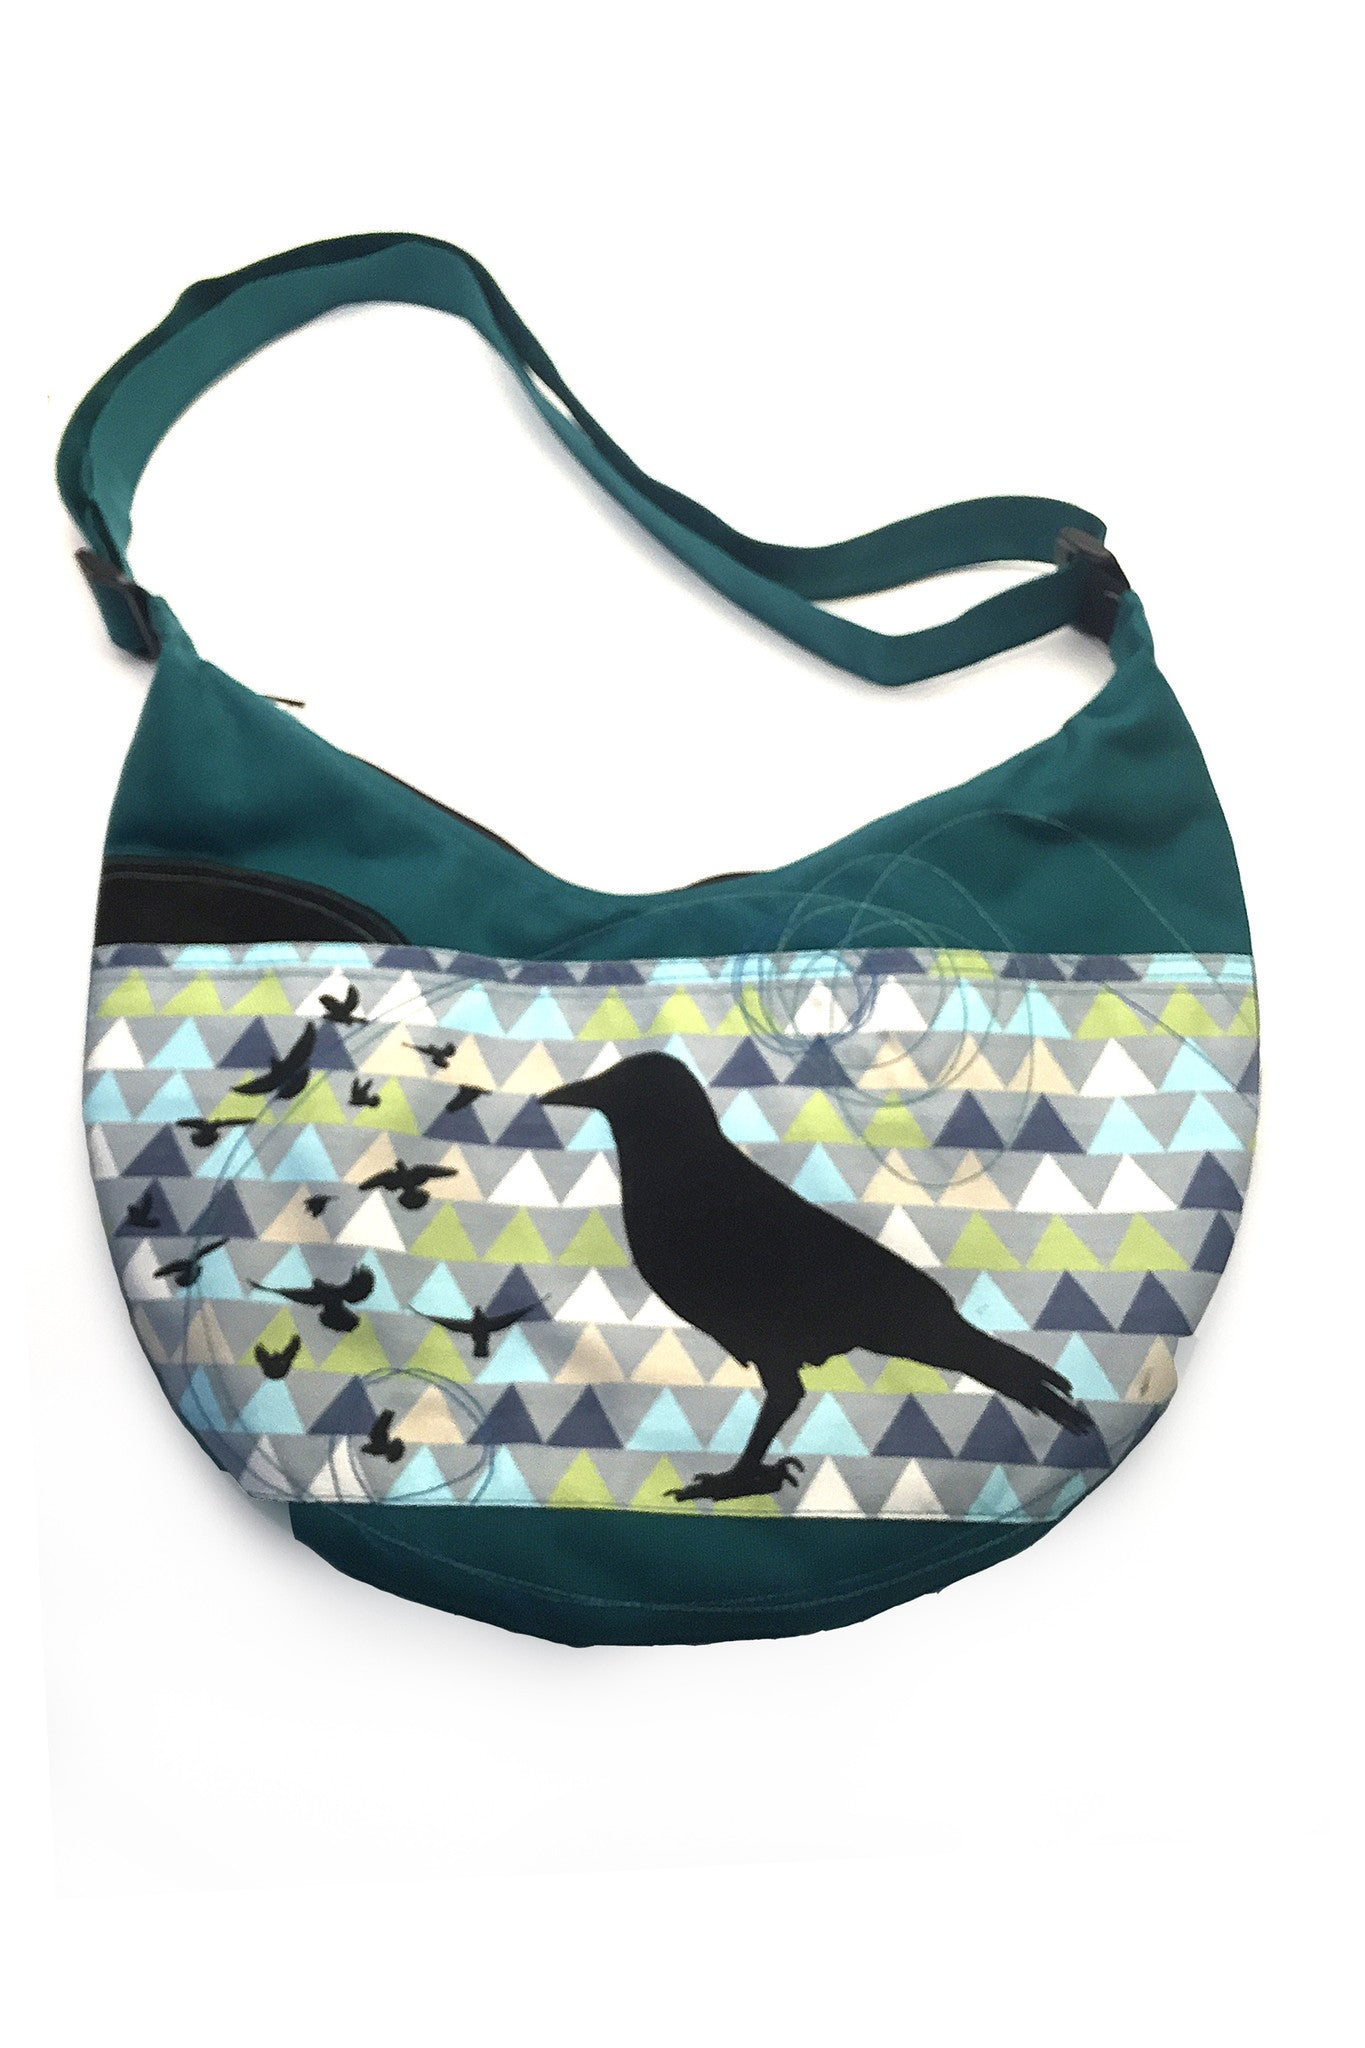 Cynthia DM One of a Kind Round Bag - Teal Crows and Triangles